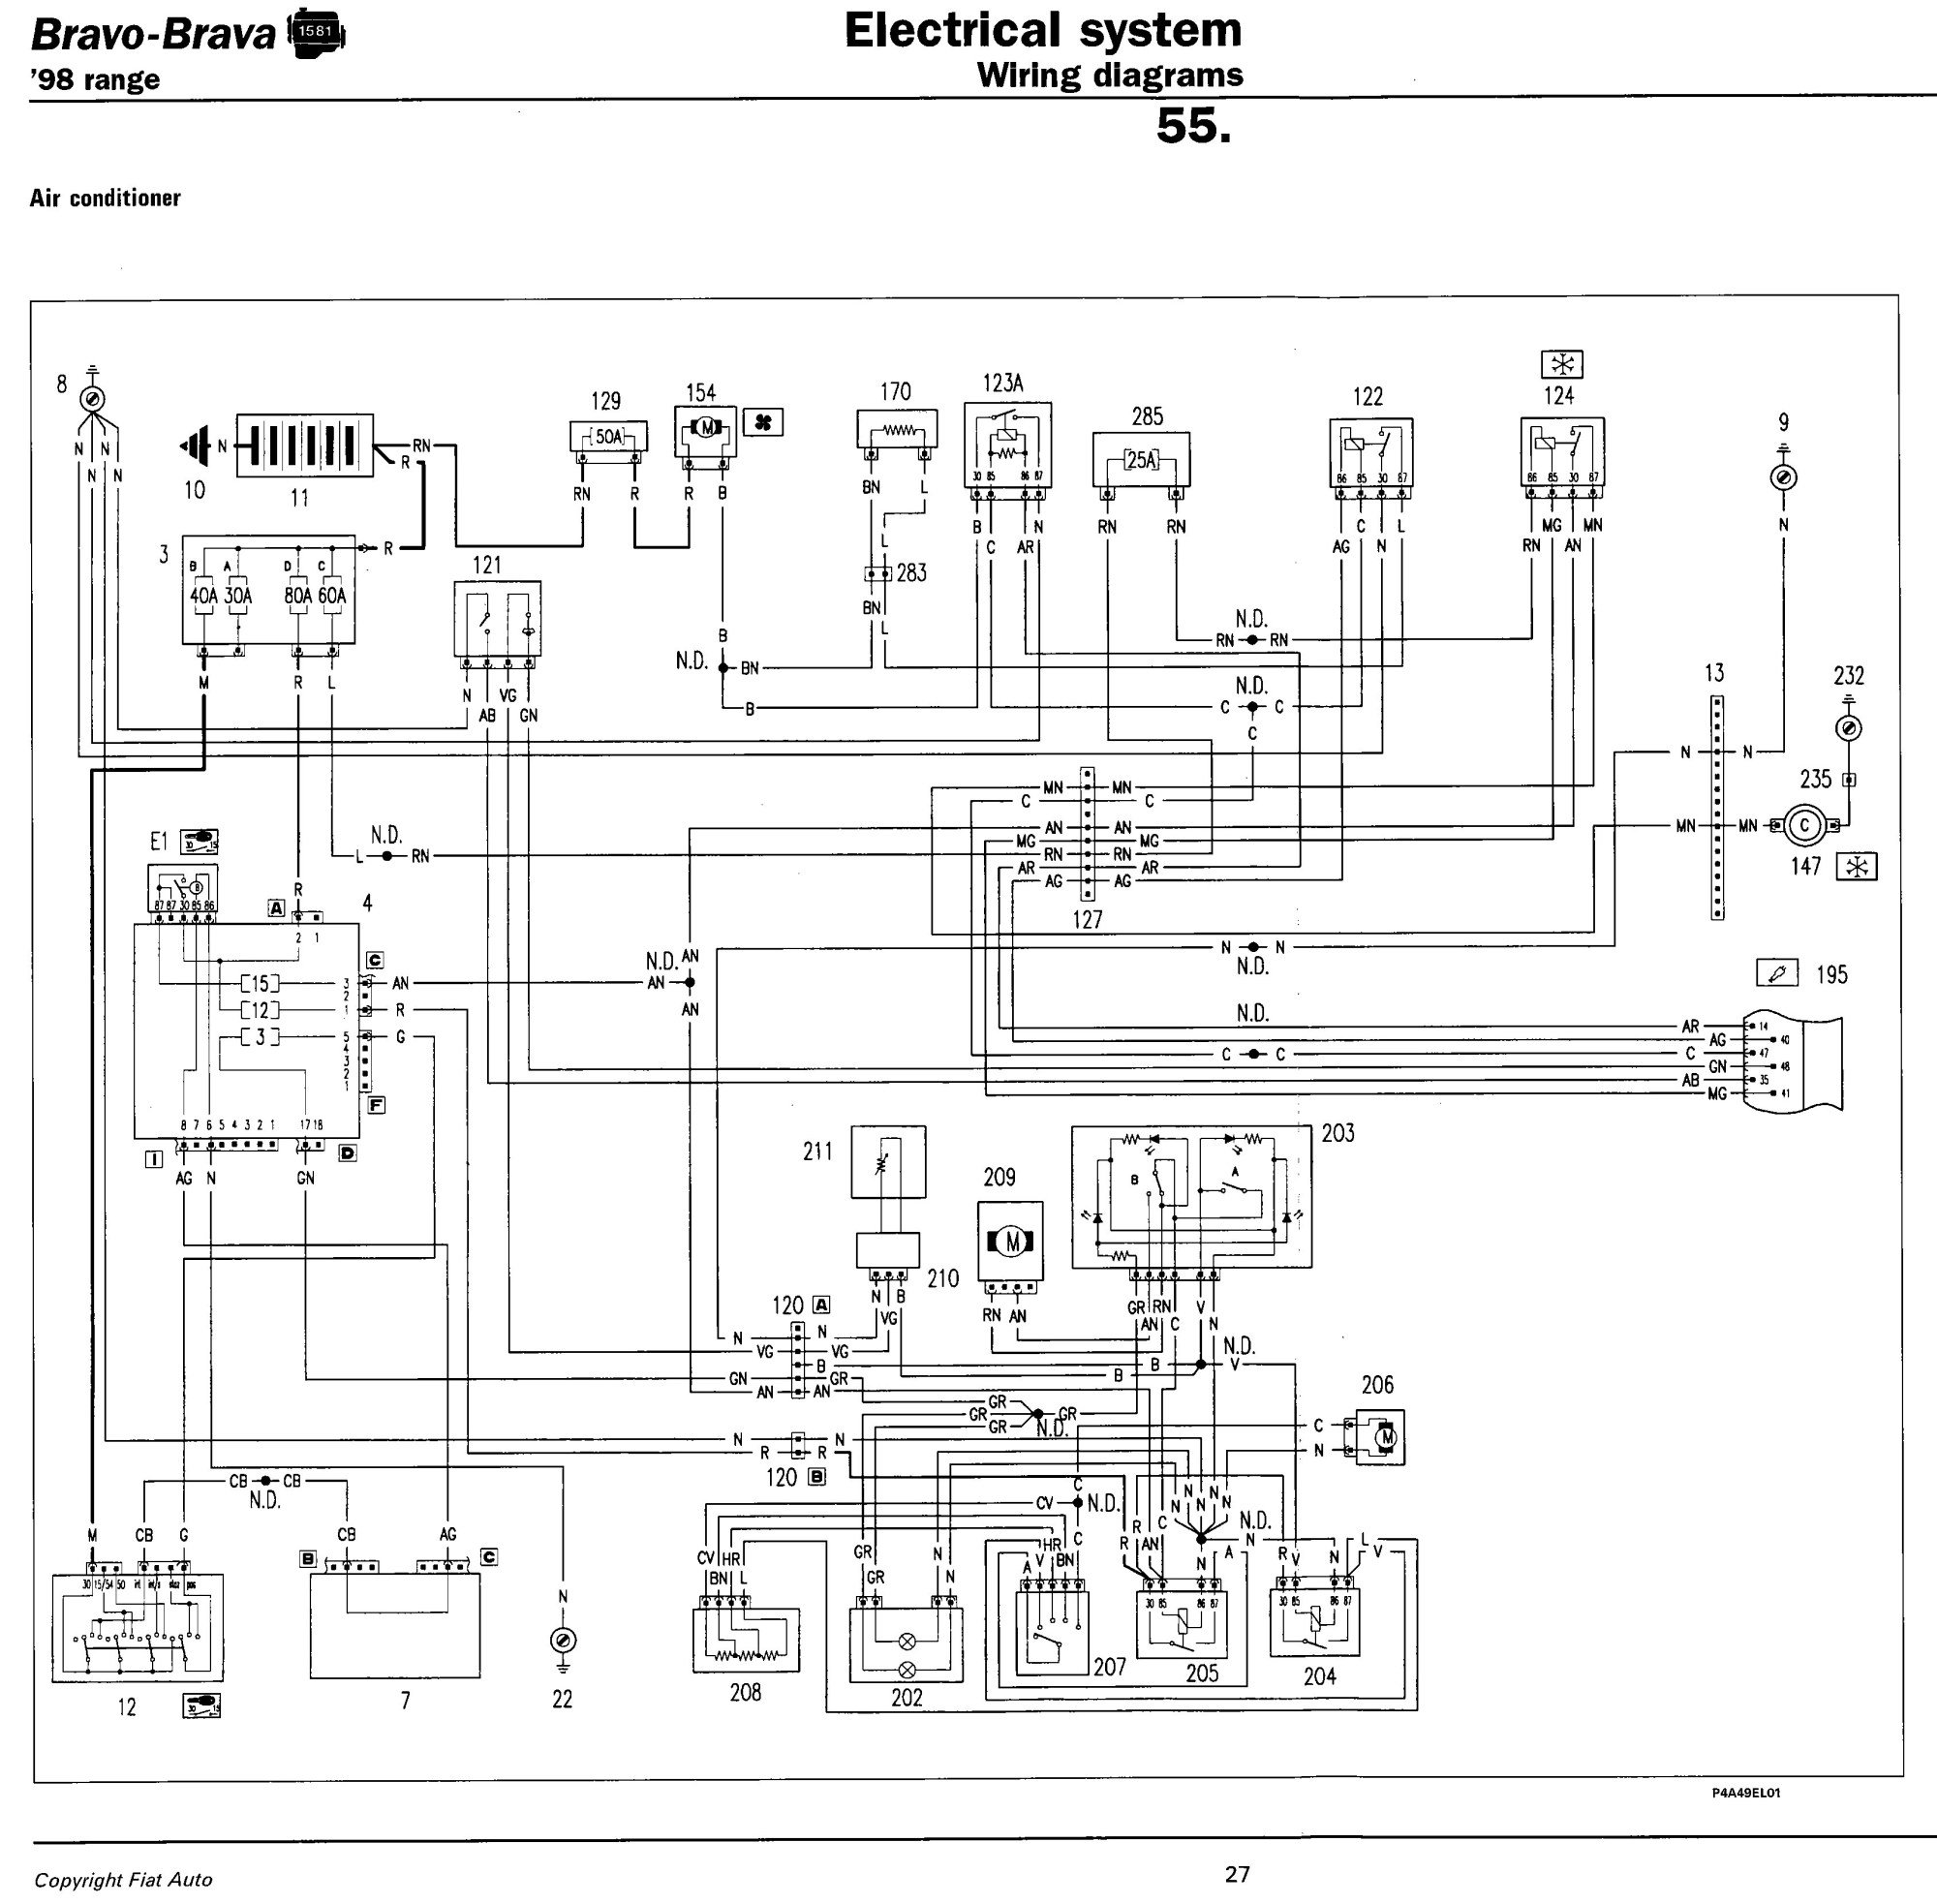 hight resolution of 1973 mercedes 220 wiring diagram manual e book 1973 fiat 128 wiring diagram in color wiring